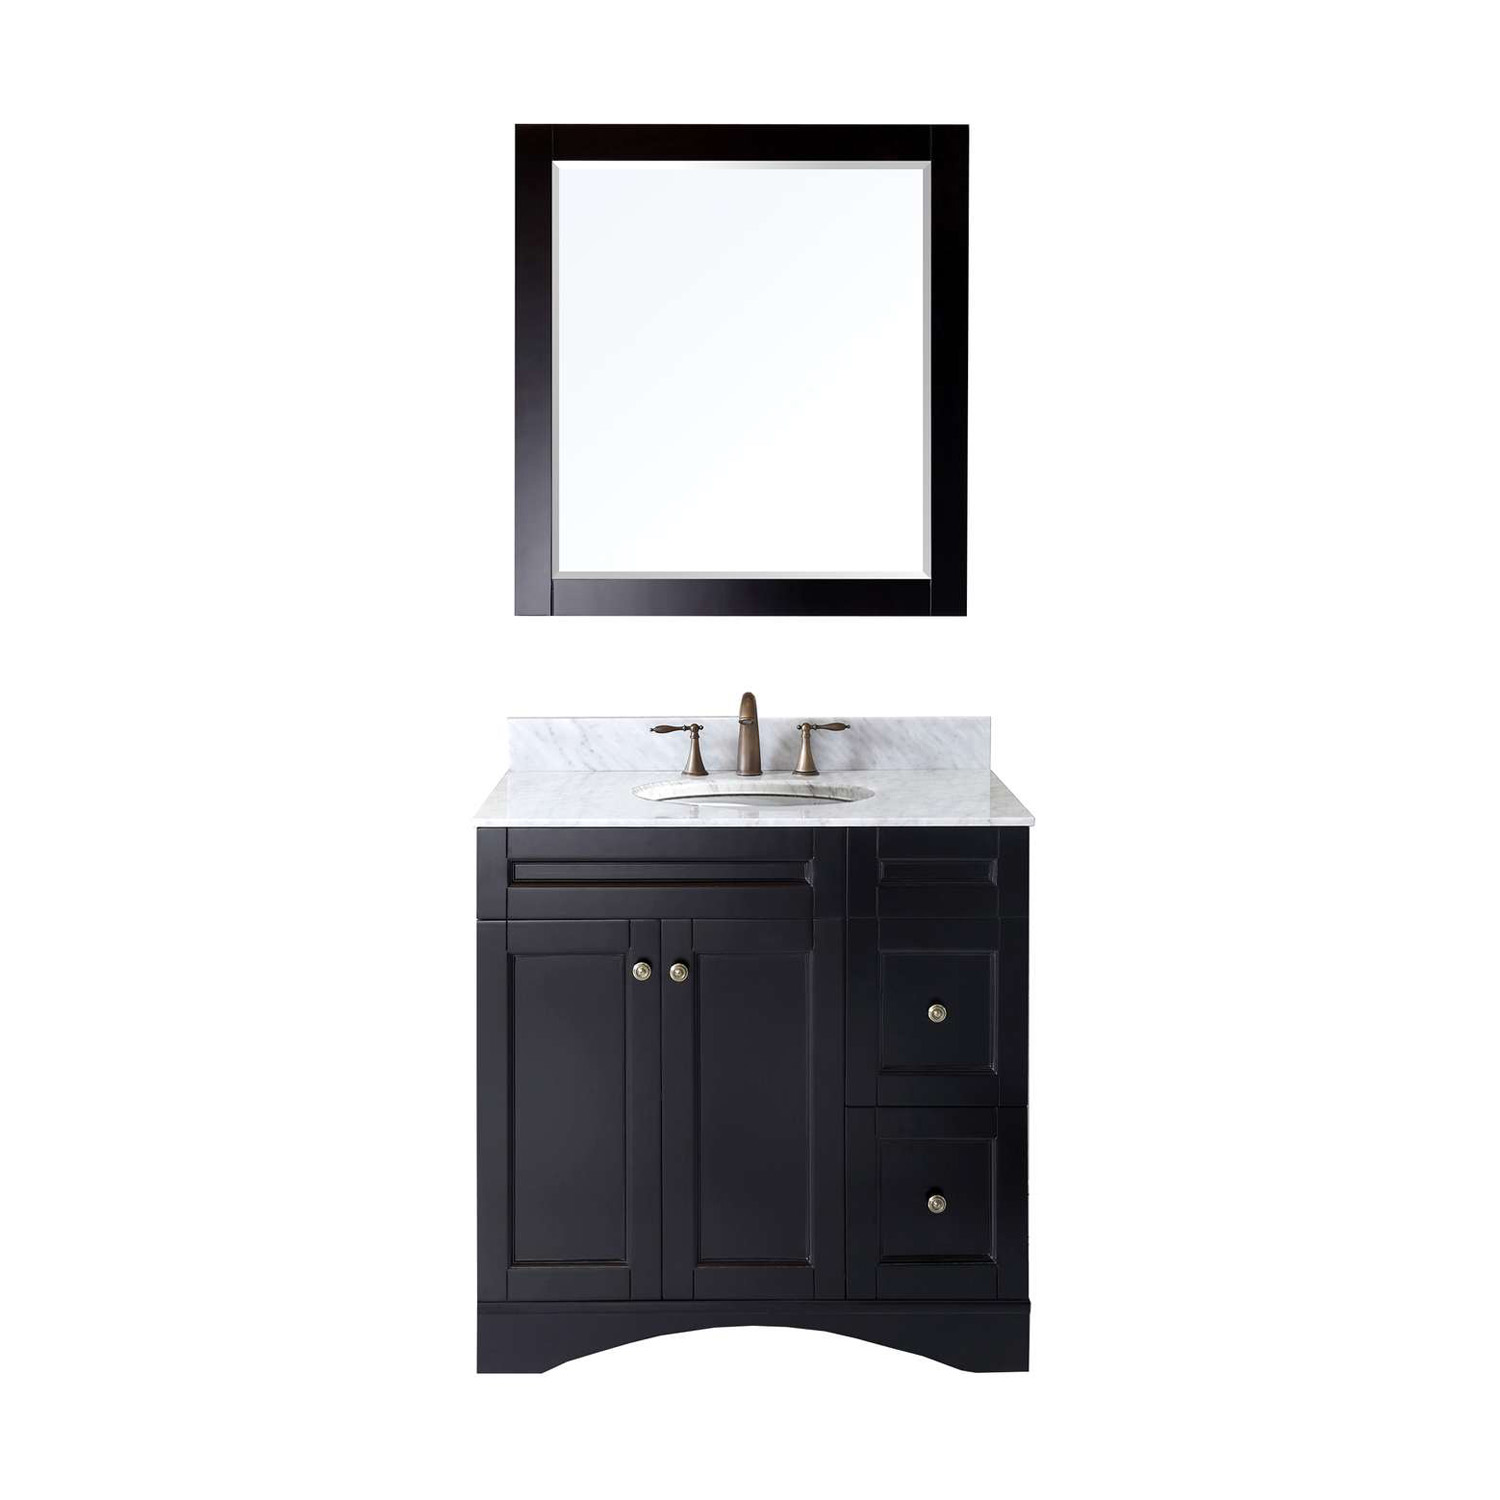 """36"""" Single Bath Vanity in Espresso Finish with Top, Sink and Mirror Options"""